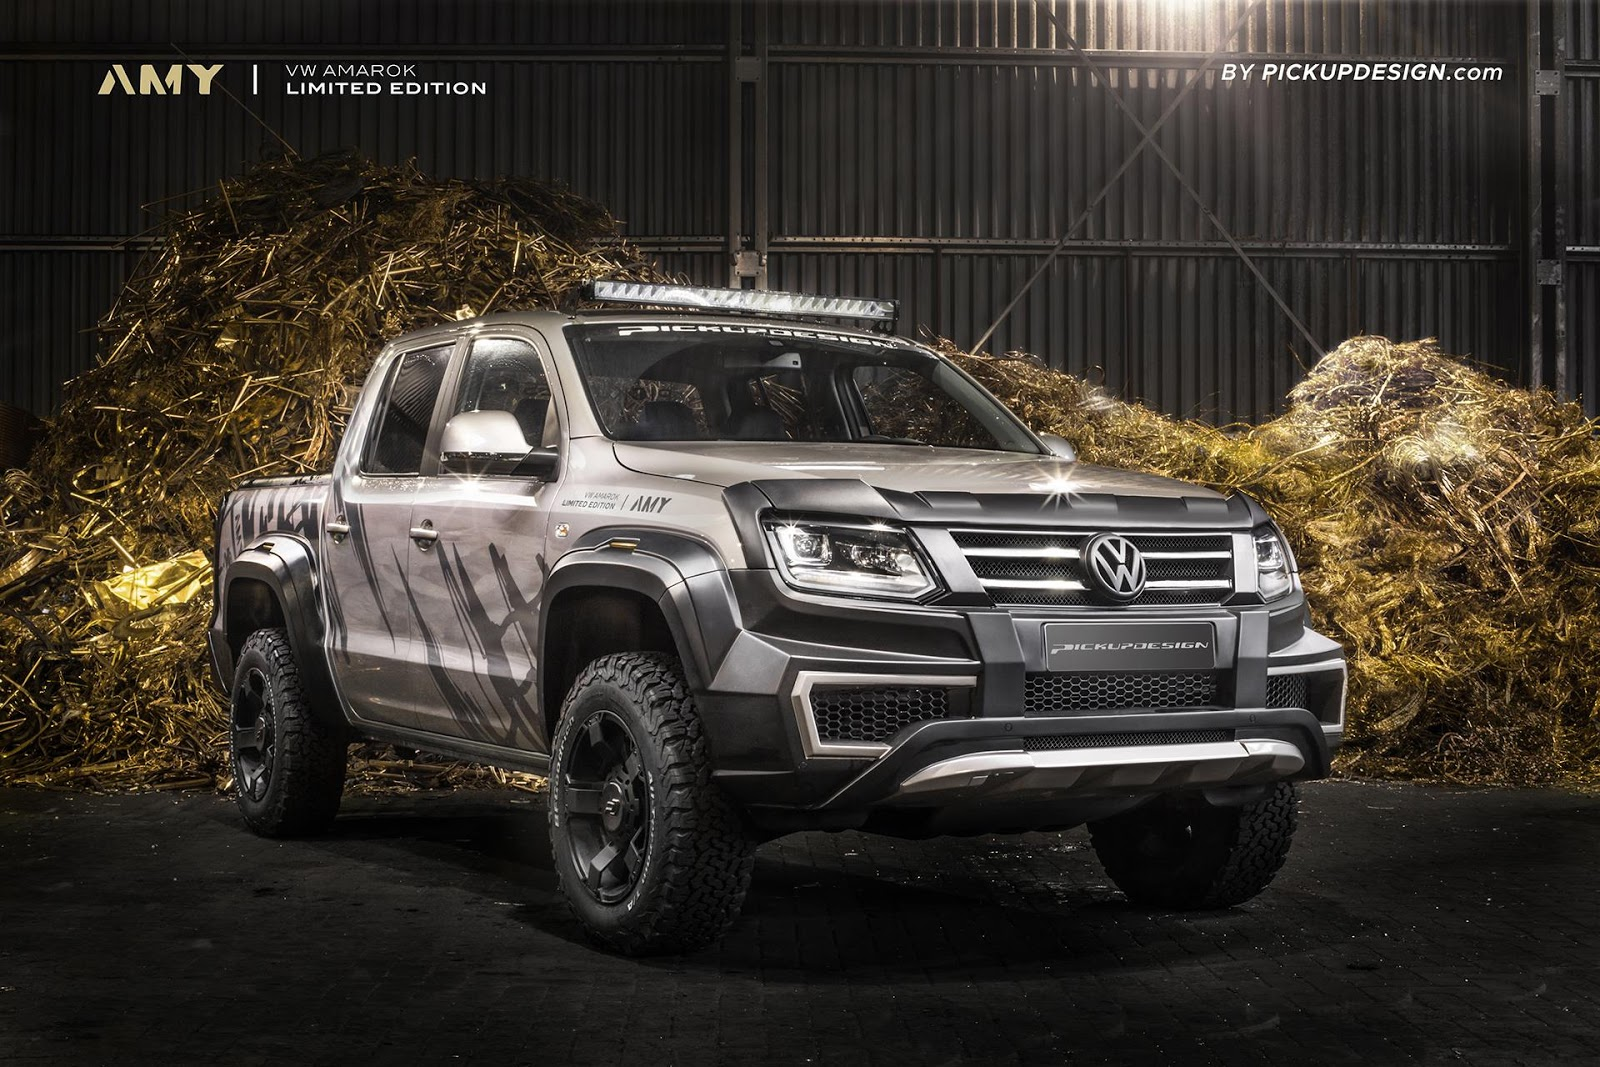 VW-Amarok-Pickup-Design-1